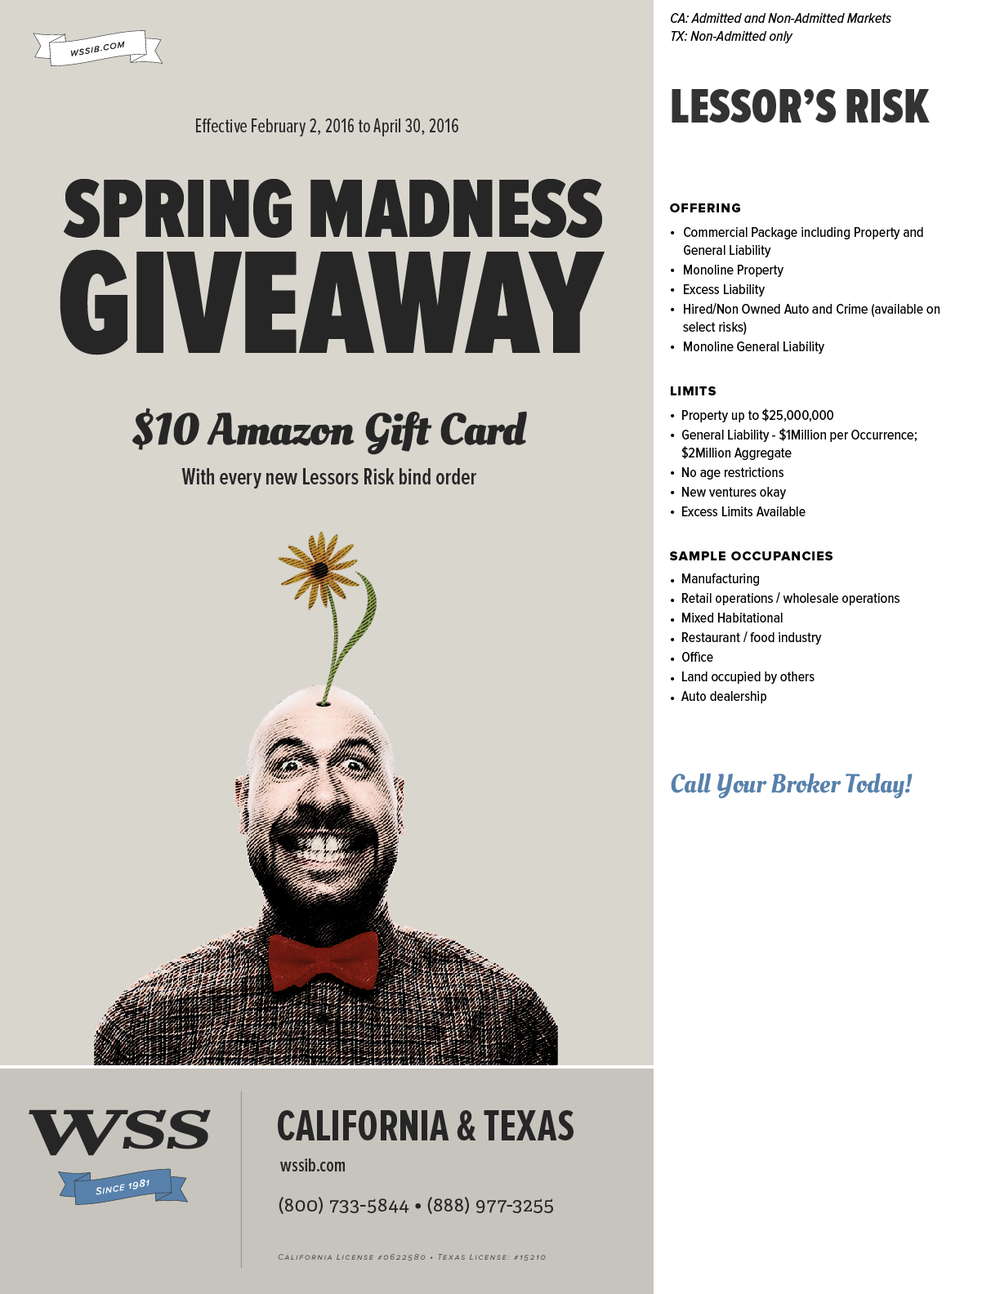 WSS-Flyer-SpringMadness.png